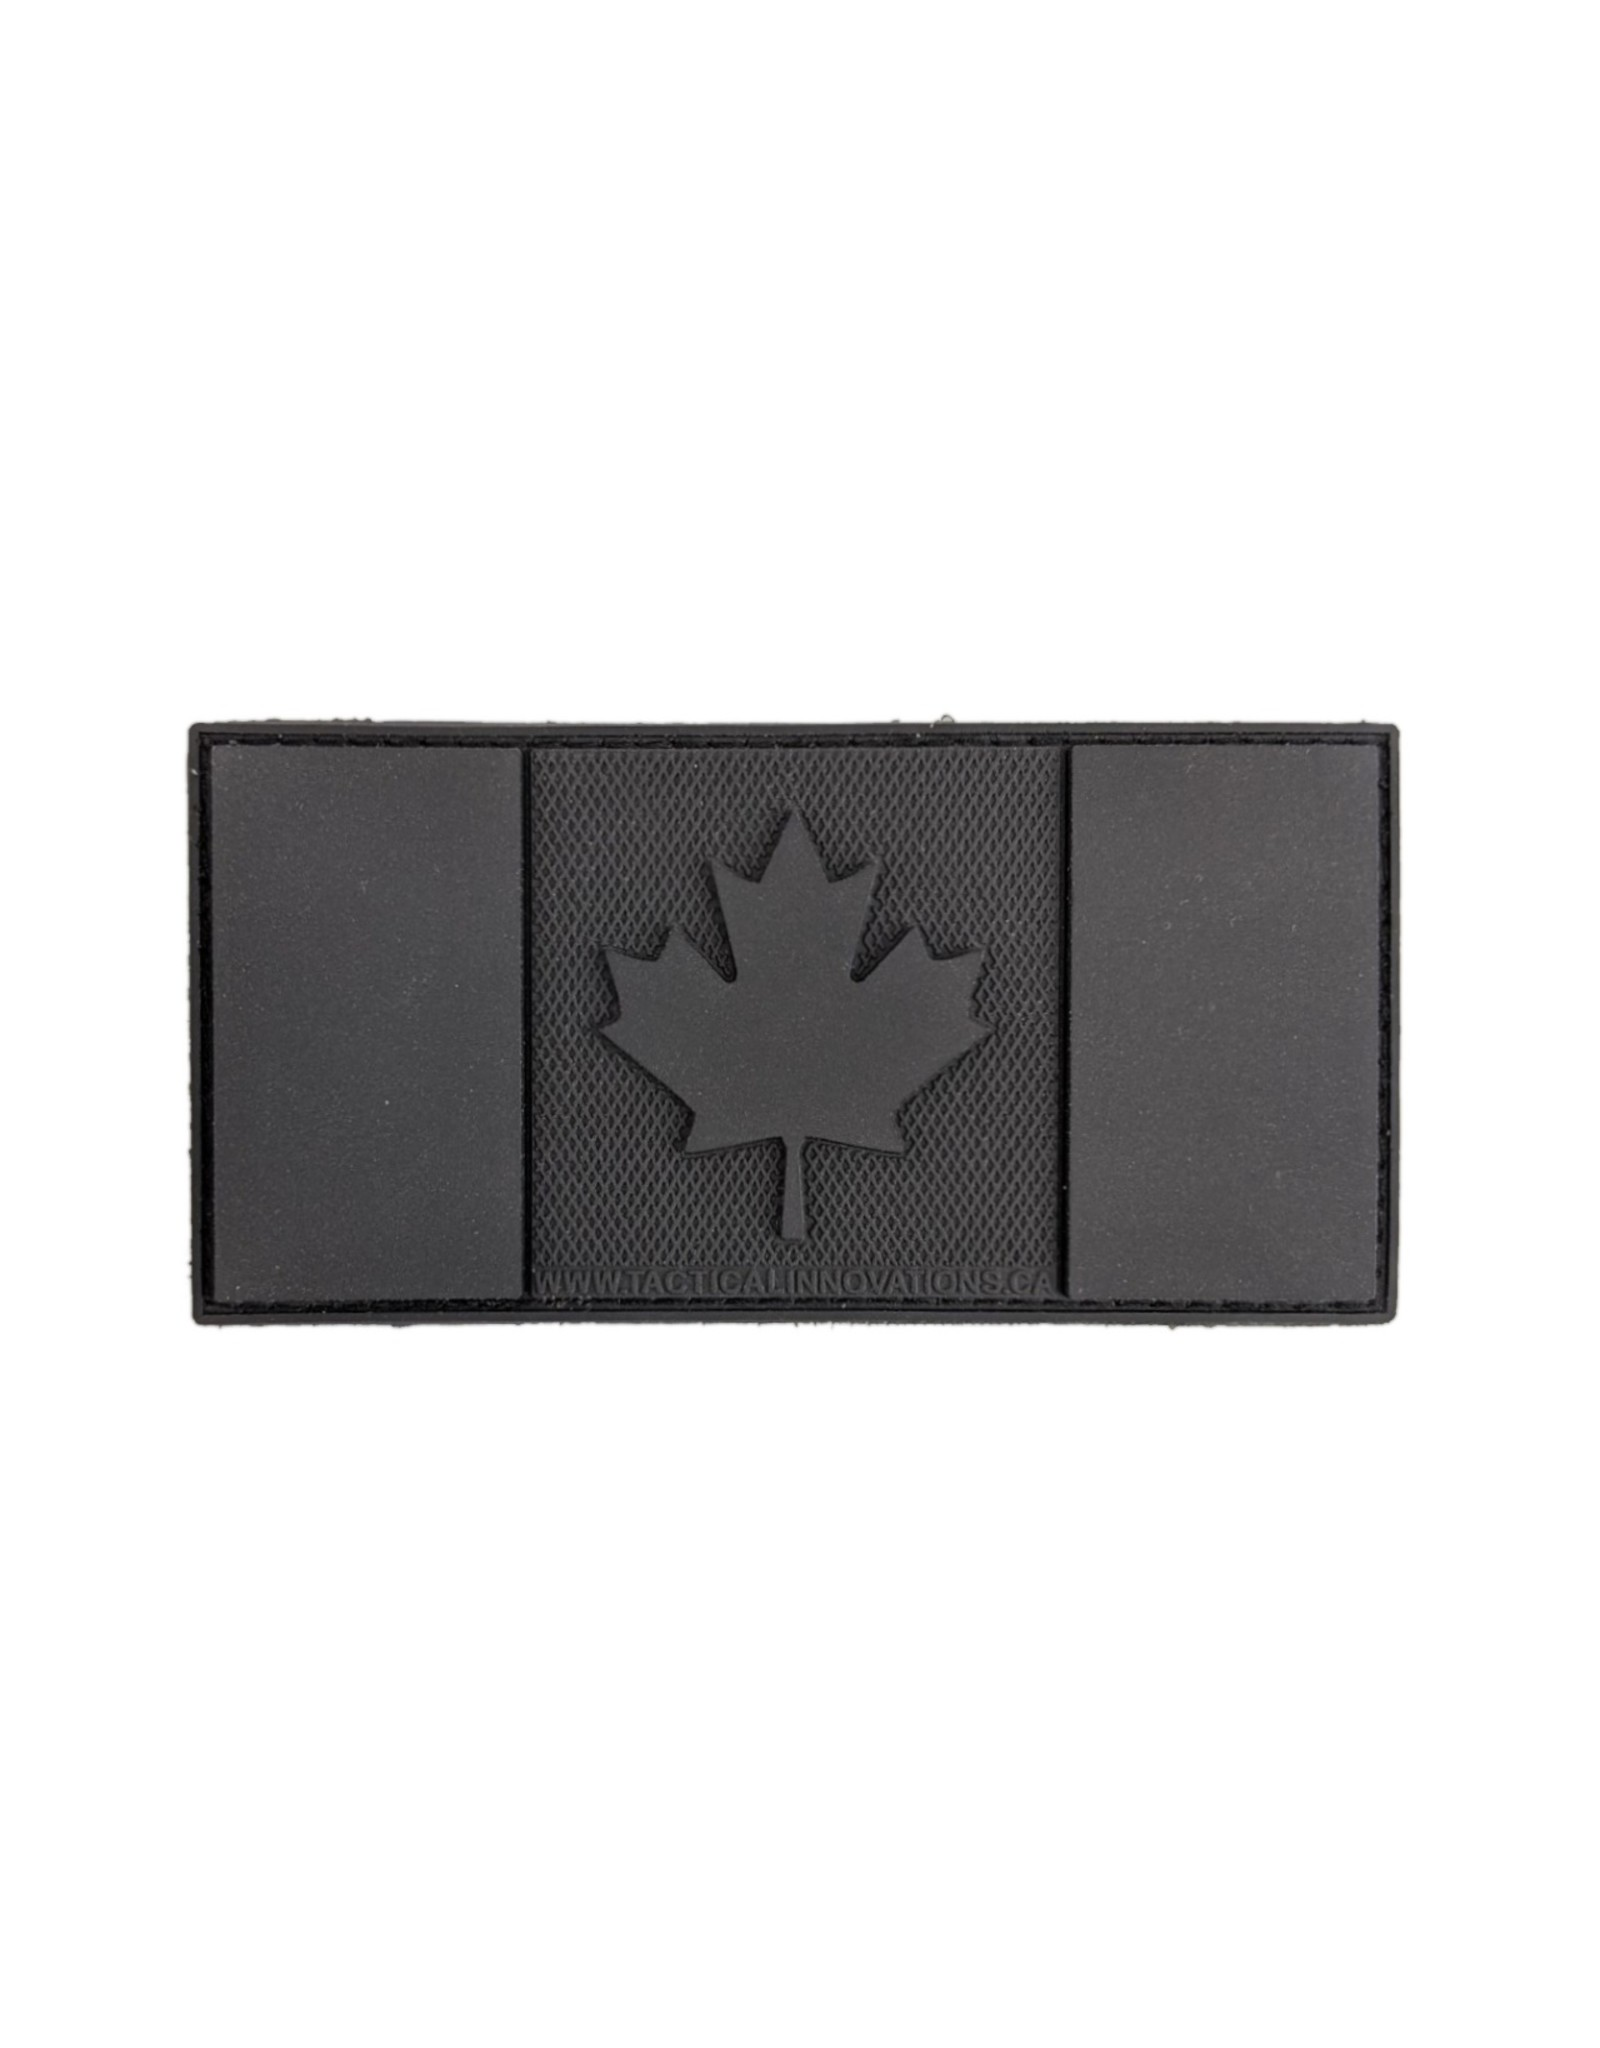 TIC Patch - CANADA FLAG 1.5X3 BLKOUT